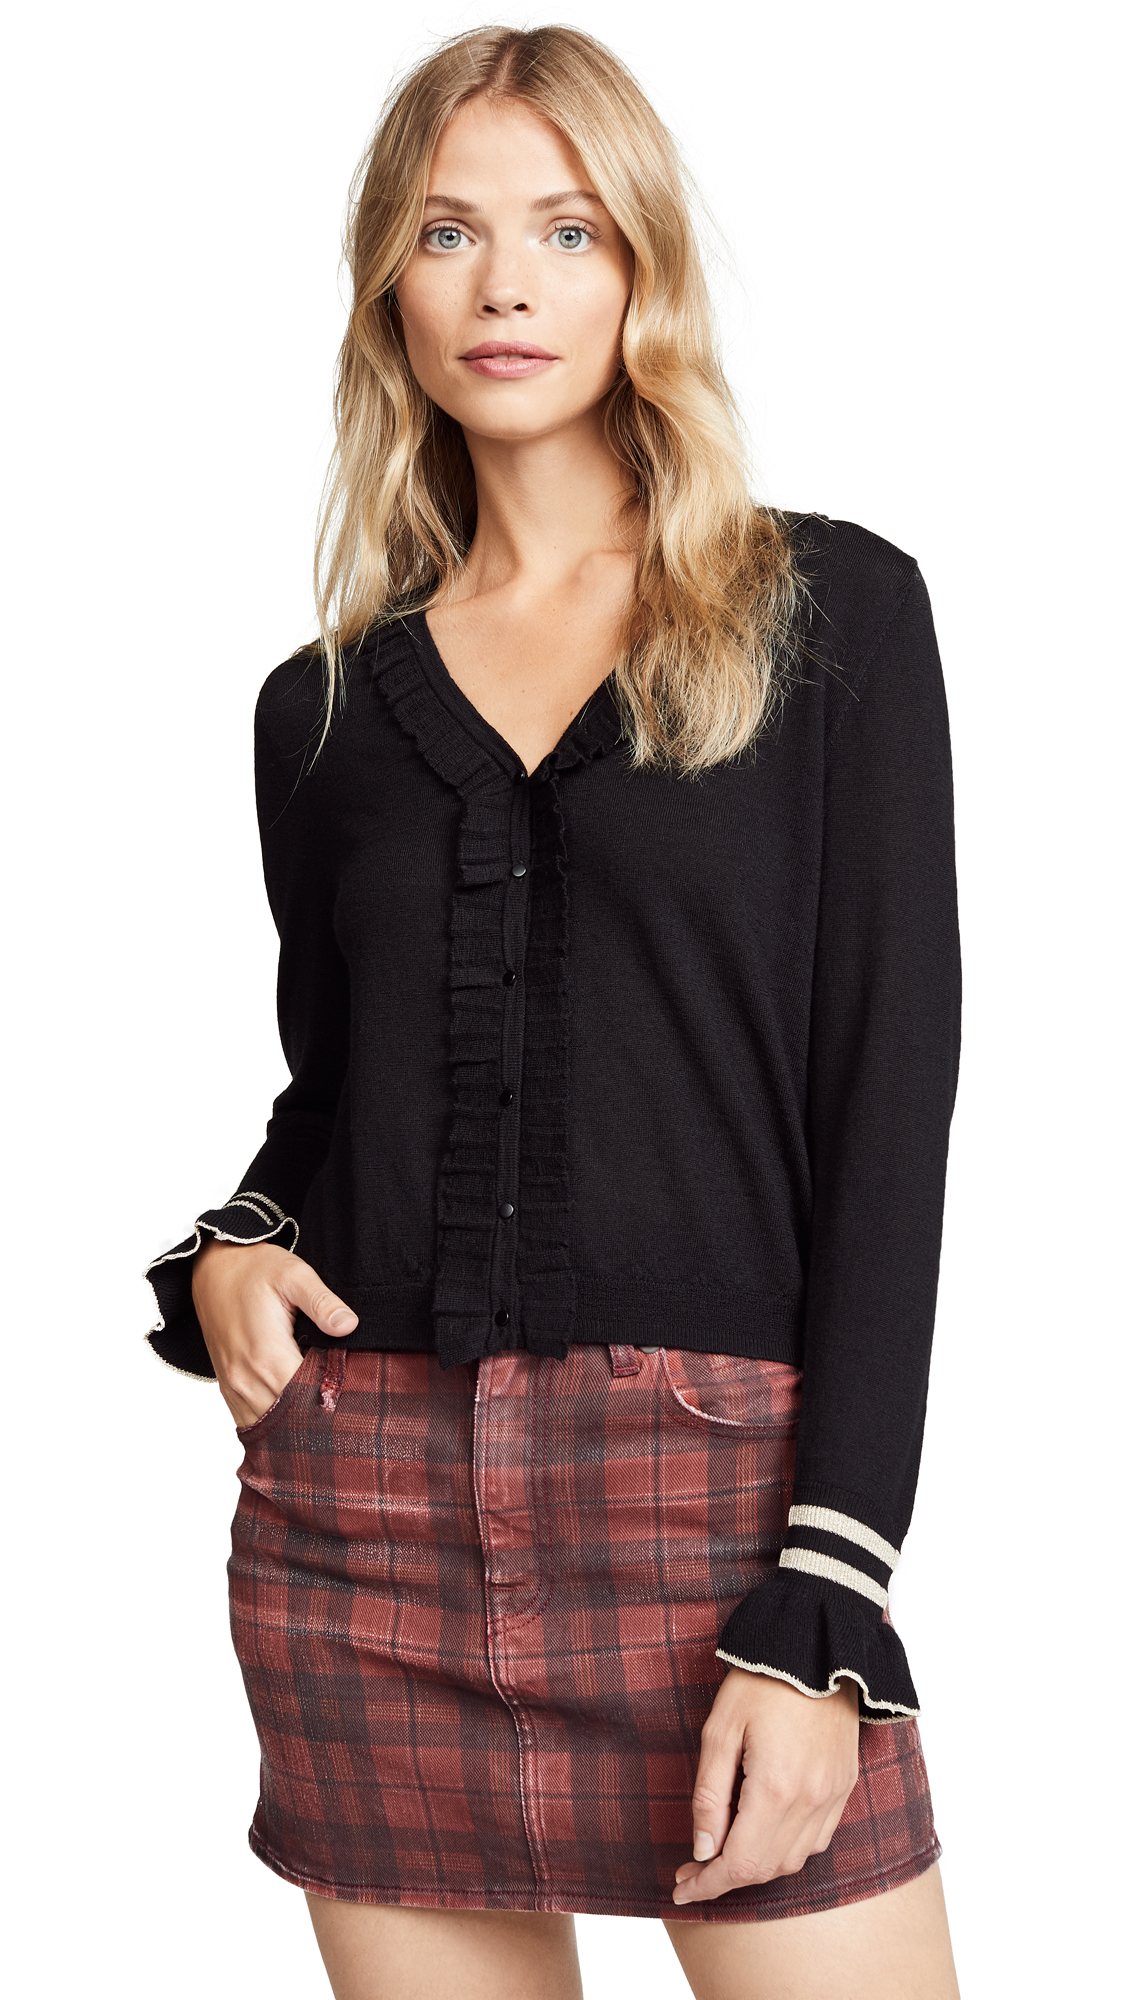 Suncoo Gama Cardigan In Black